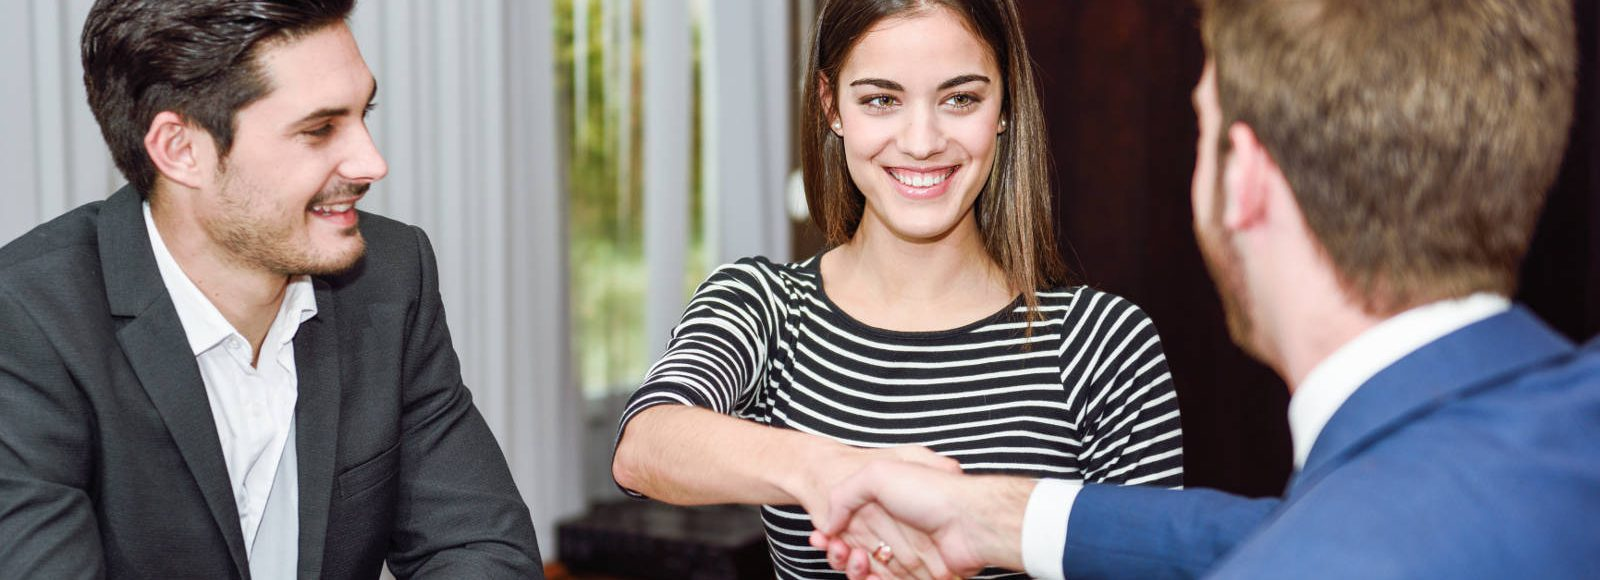 Smiling young couple shaking hands with an insurance agent or investment adviser